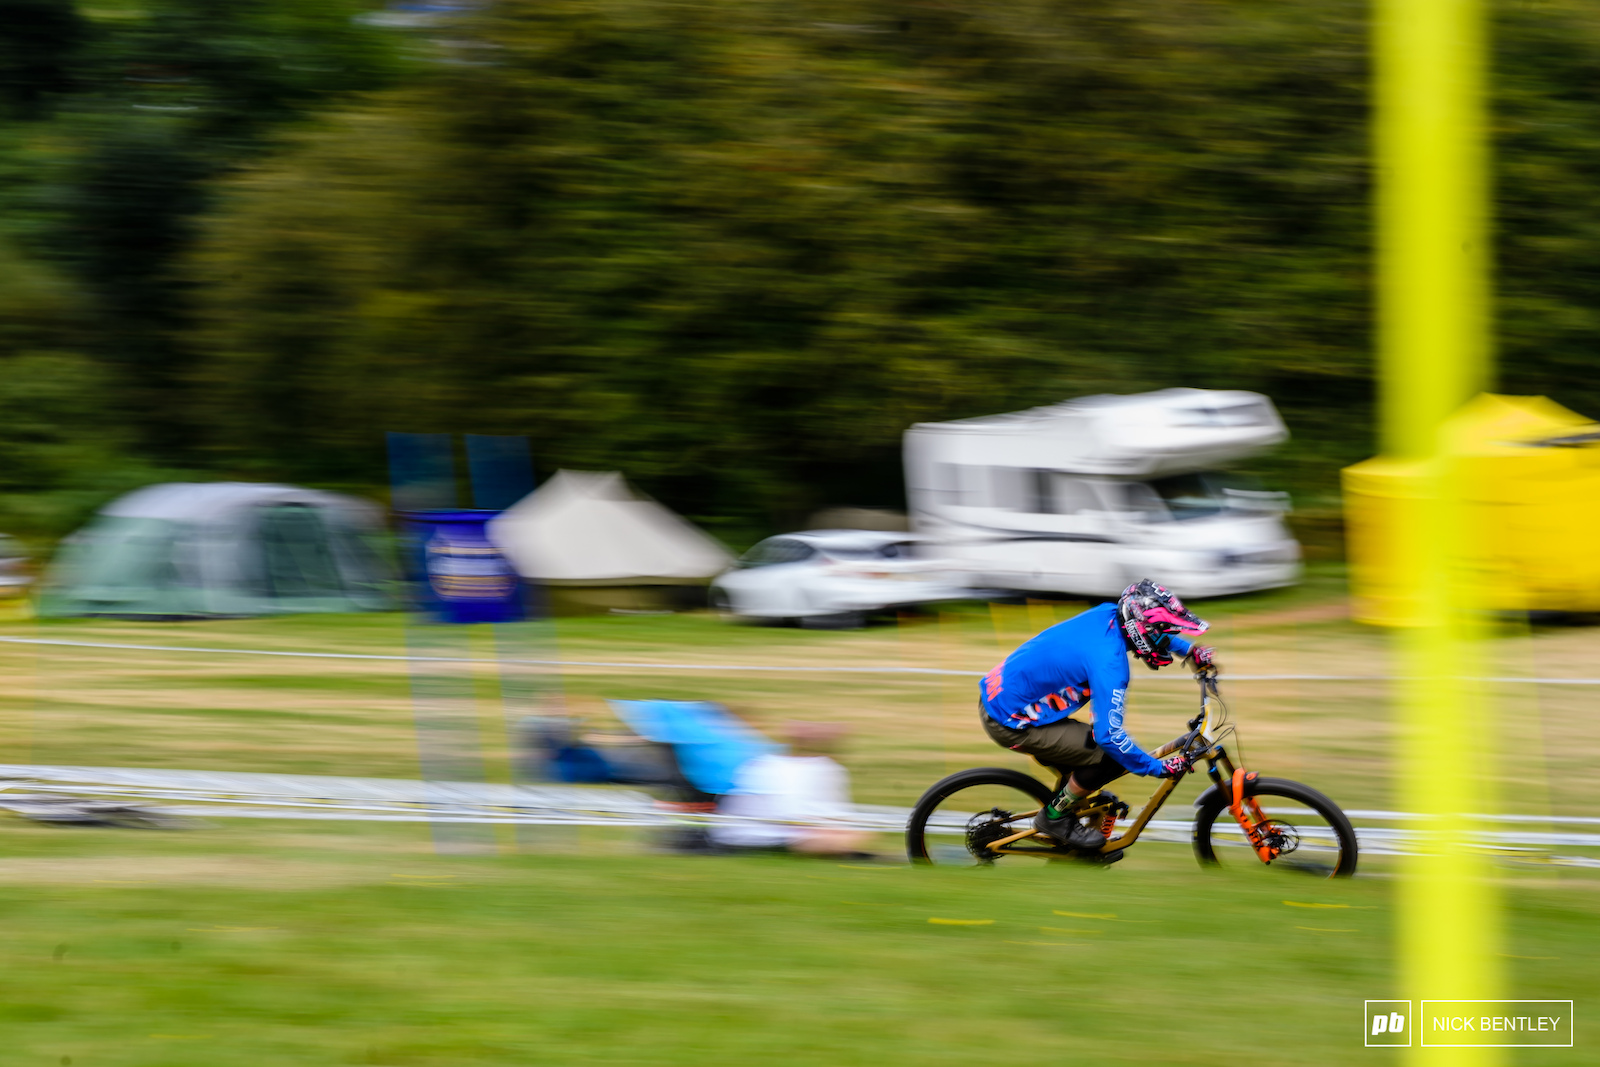 Ben Deakin carving around the blue course on his way to fourth place